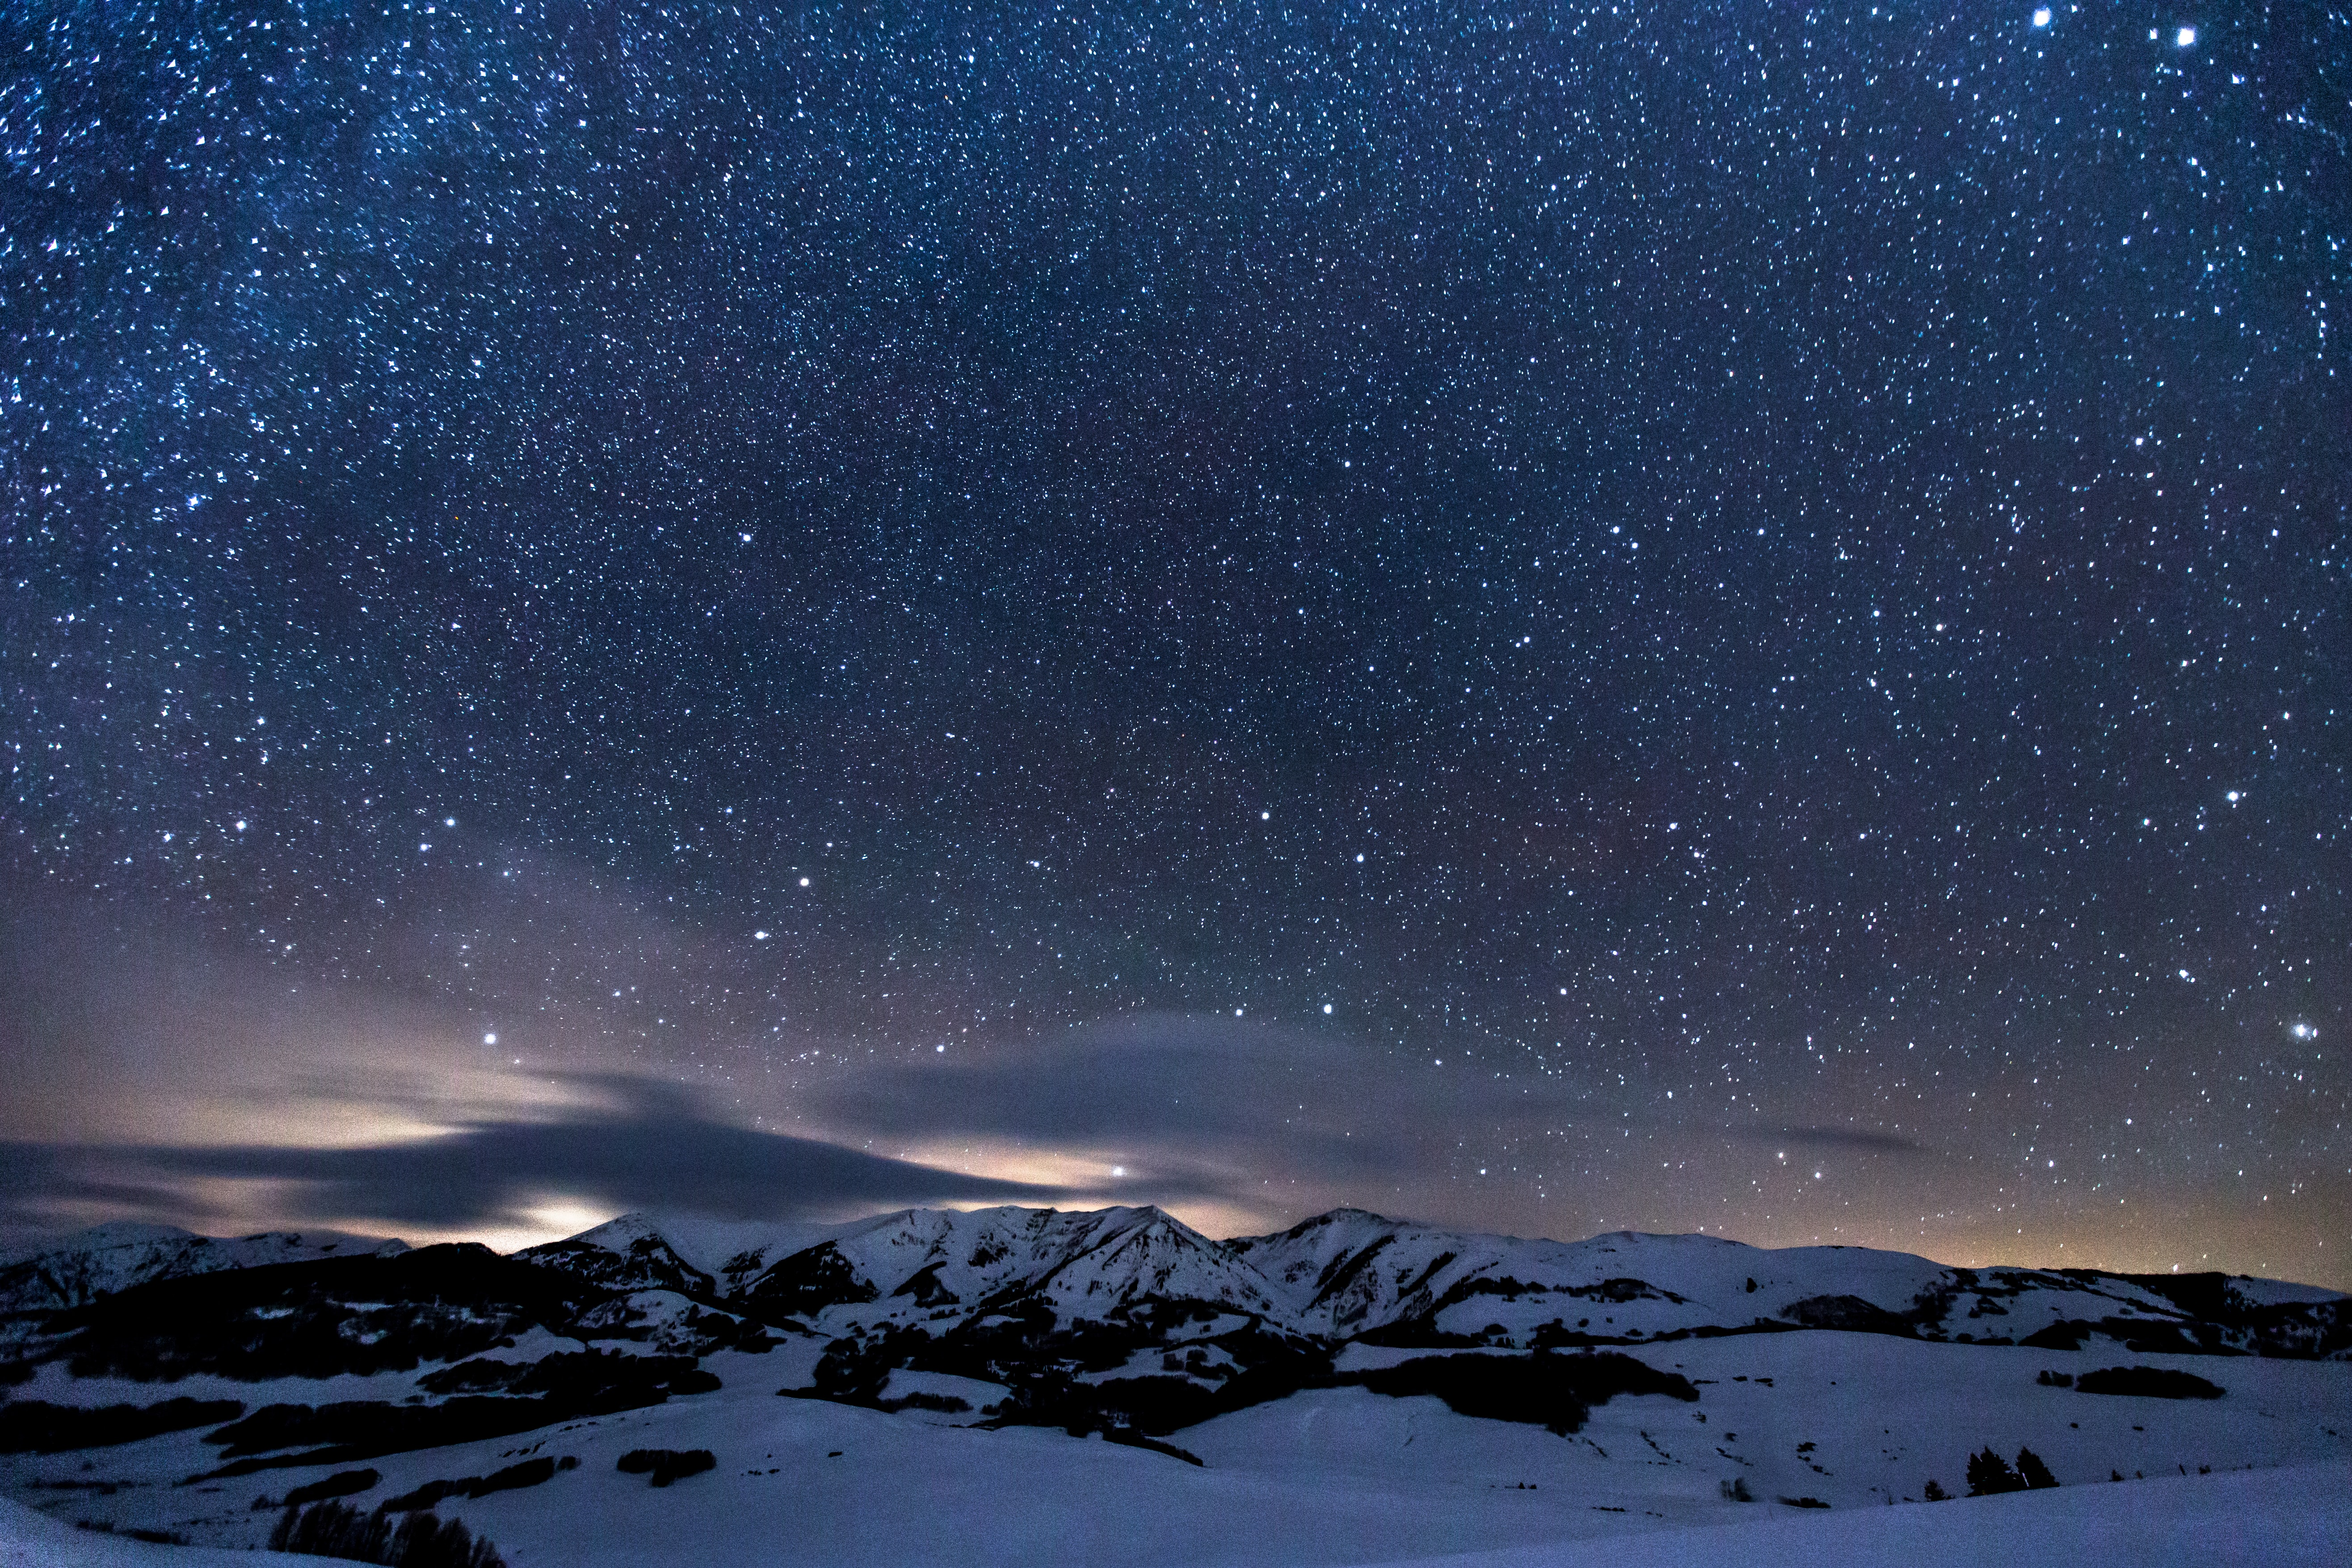 night sky with stars above snow landscape